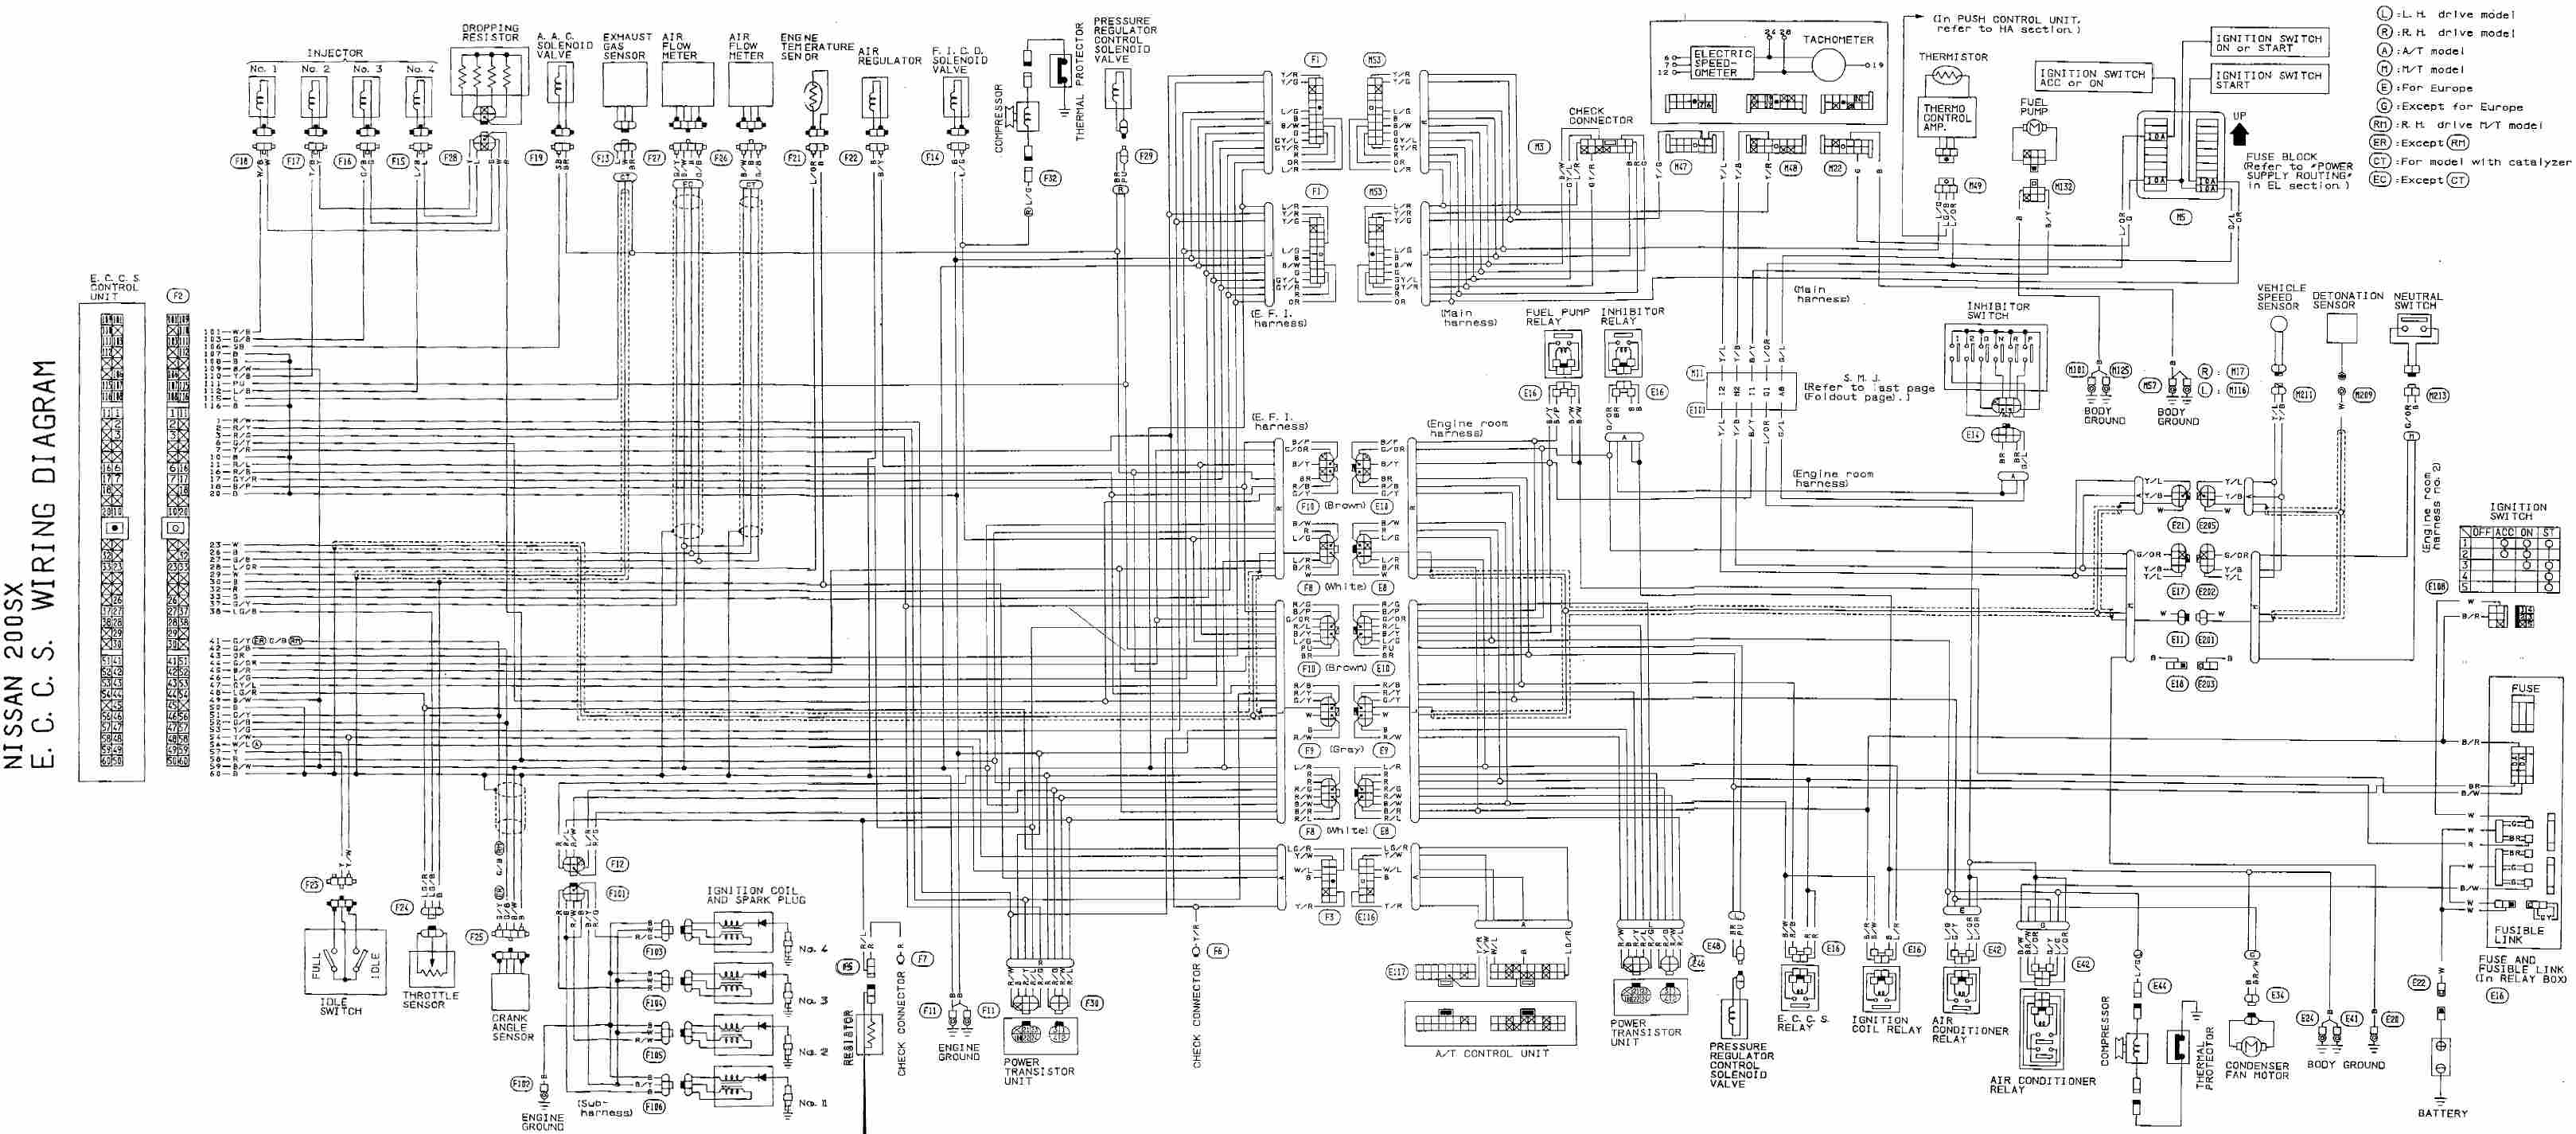 Automotive Wiring Diagram Wire Engine Schematic Smart How To Read Diagrams Images Gallery